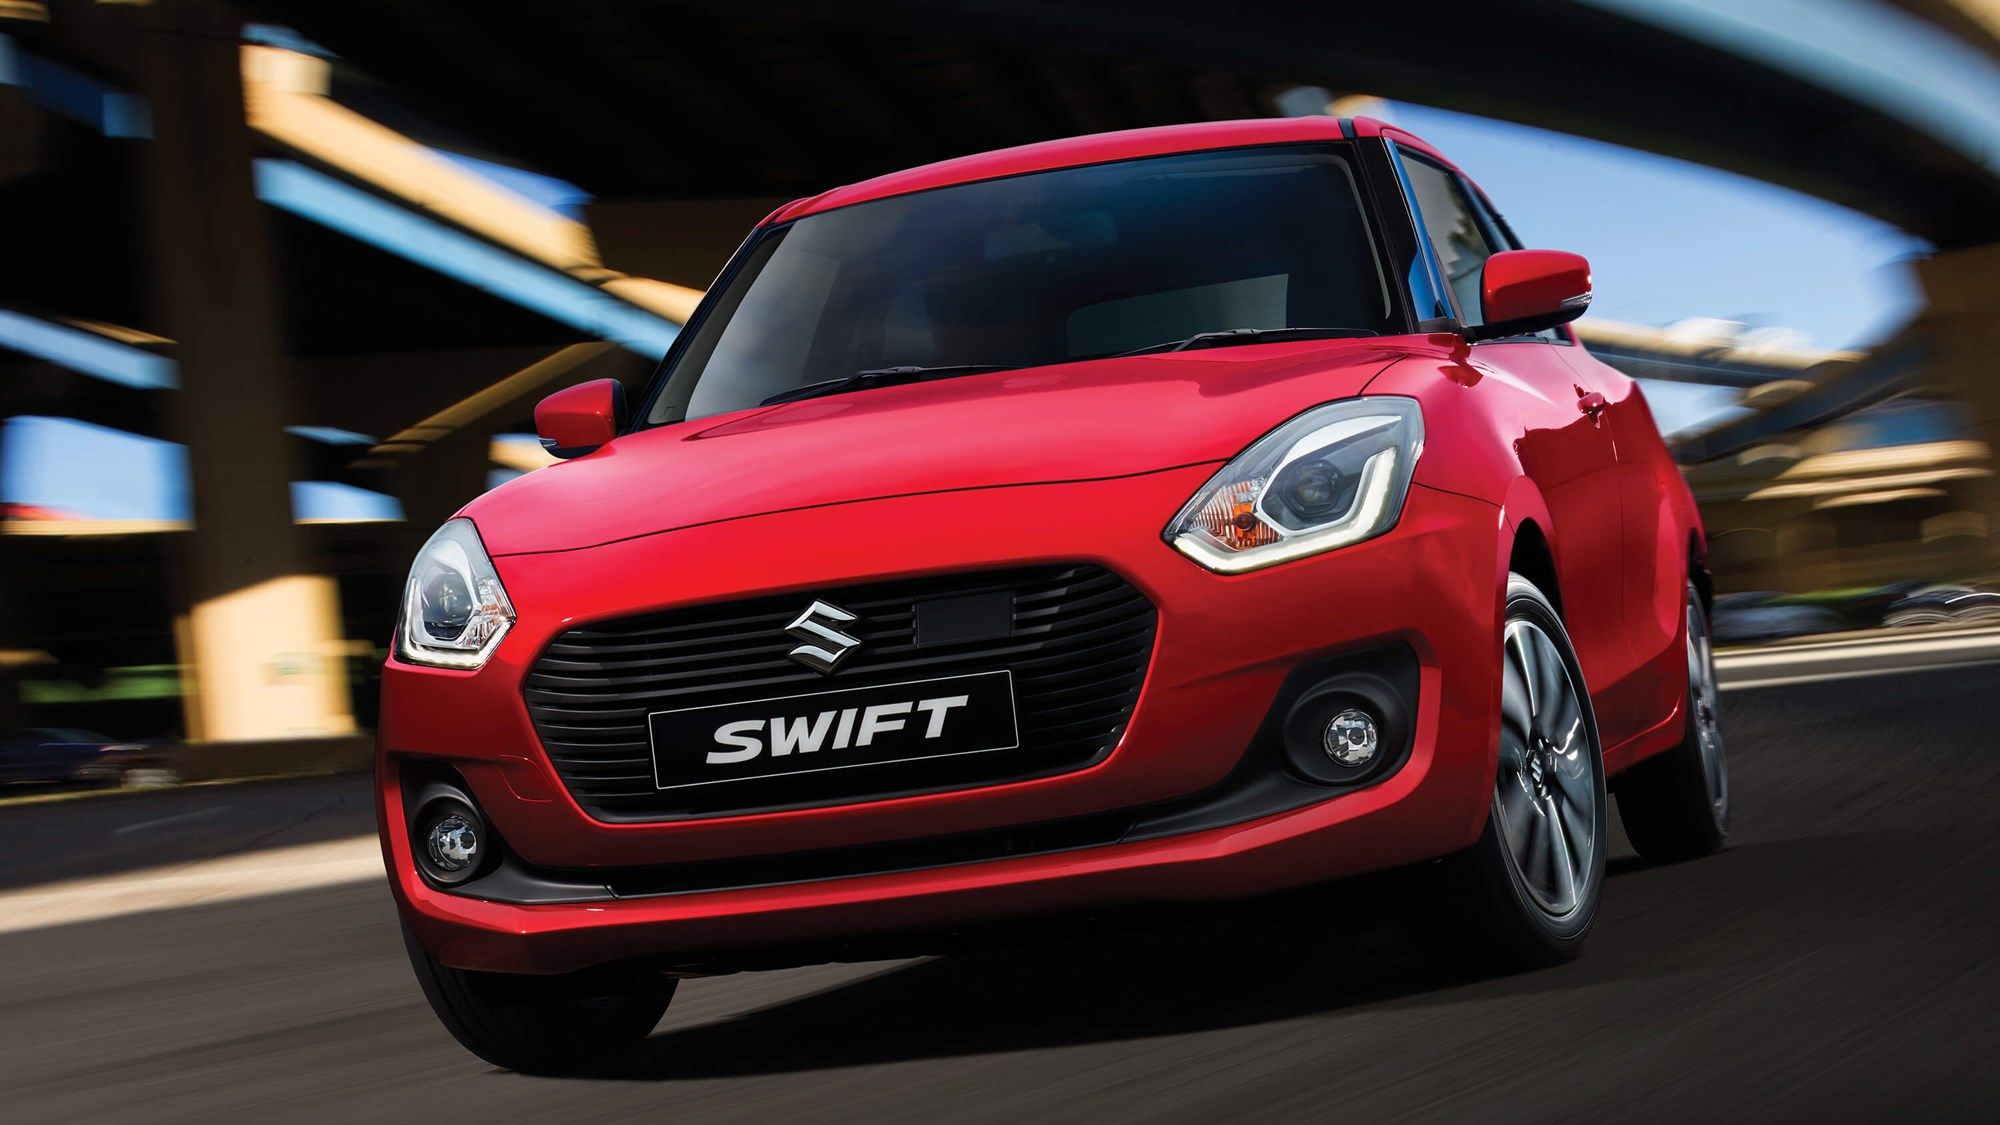 Swift joins World Car Garage at London Motorshow